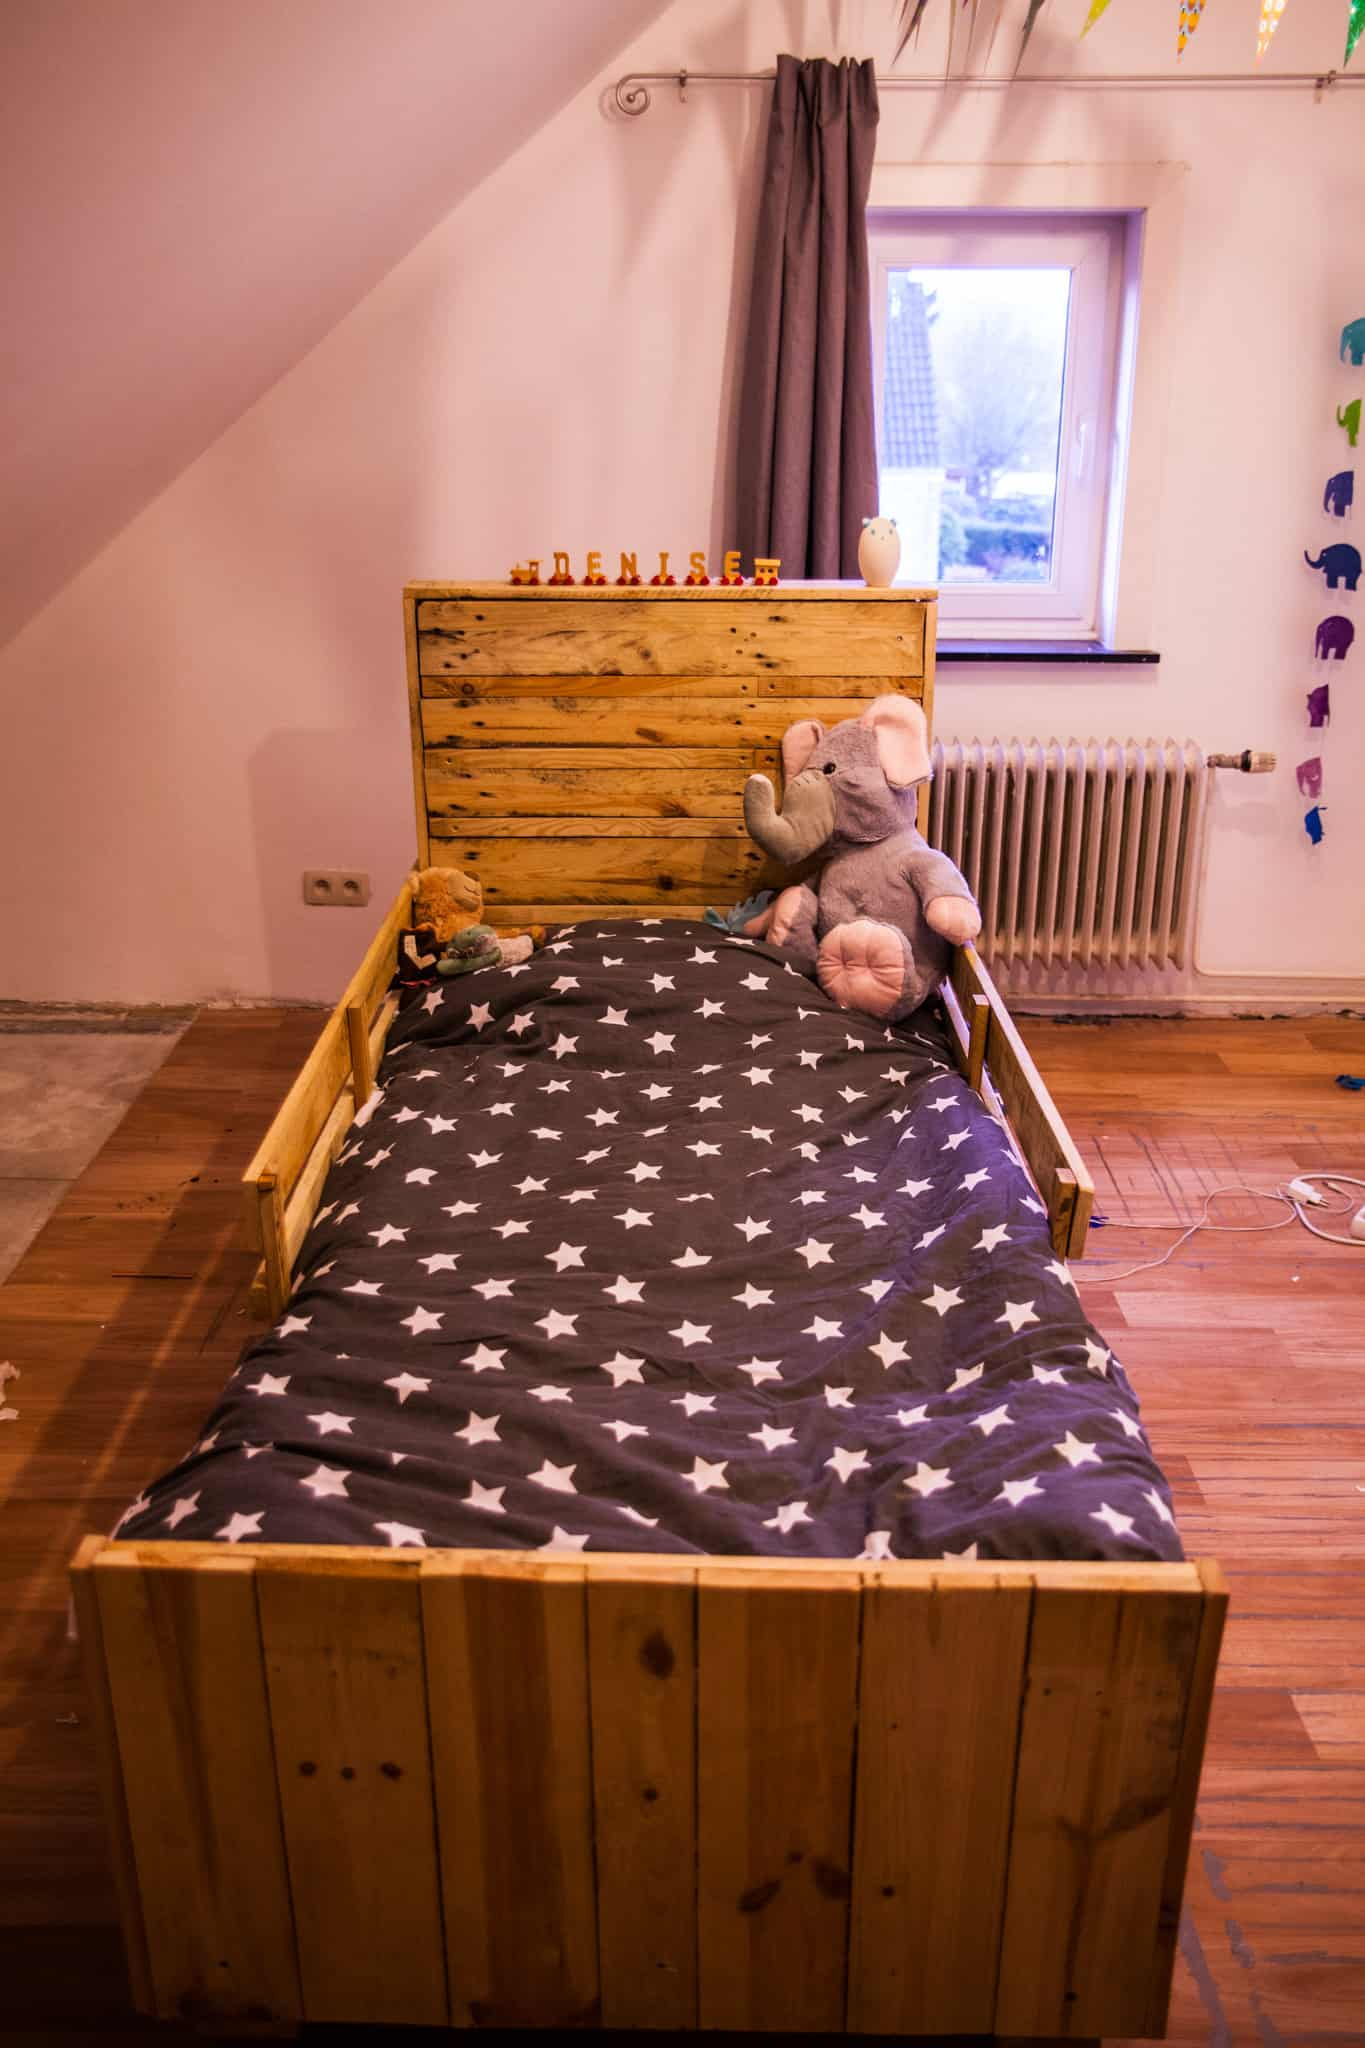 daughter 39 s first bed using pallets un lit en palette sur roulette 1001 pallets. Black Bedroom Furniture Sets. Home Design Ideas